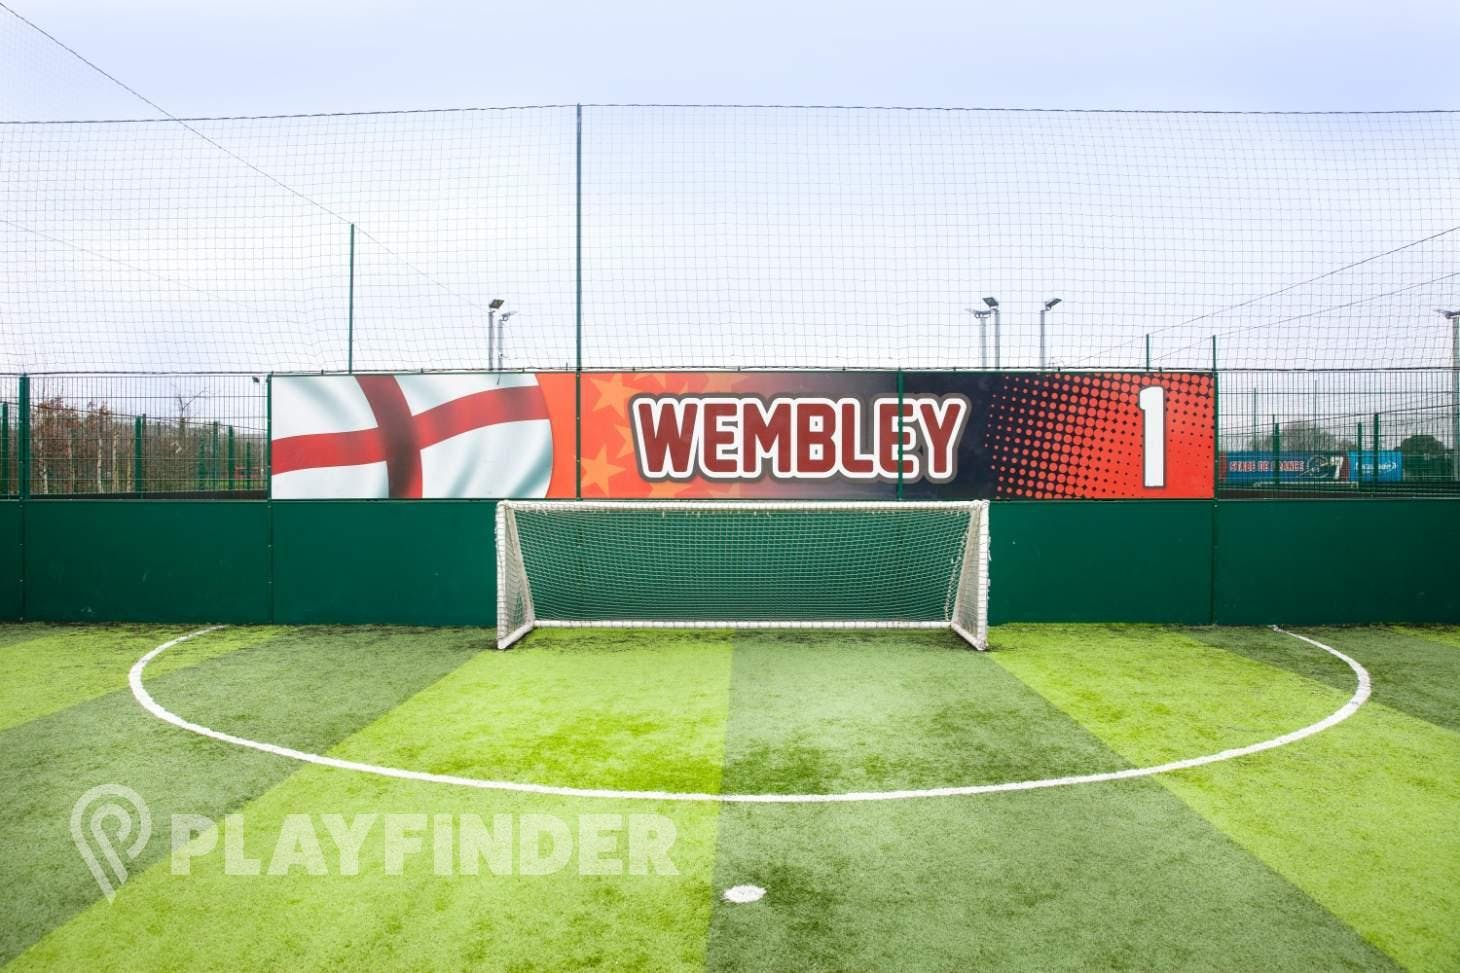 Goals Bristol South 5 a side | 3G Astroturf football pitch